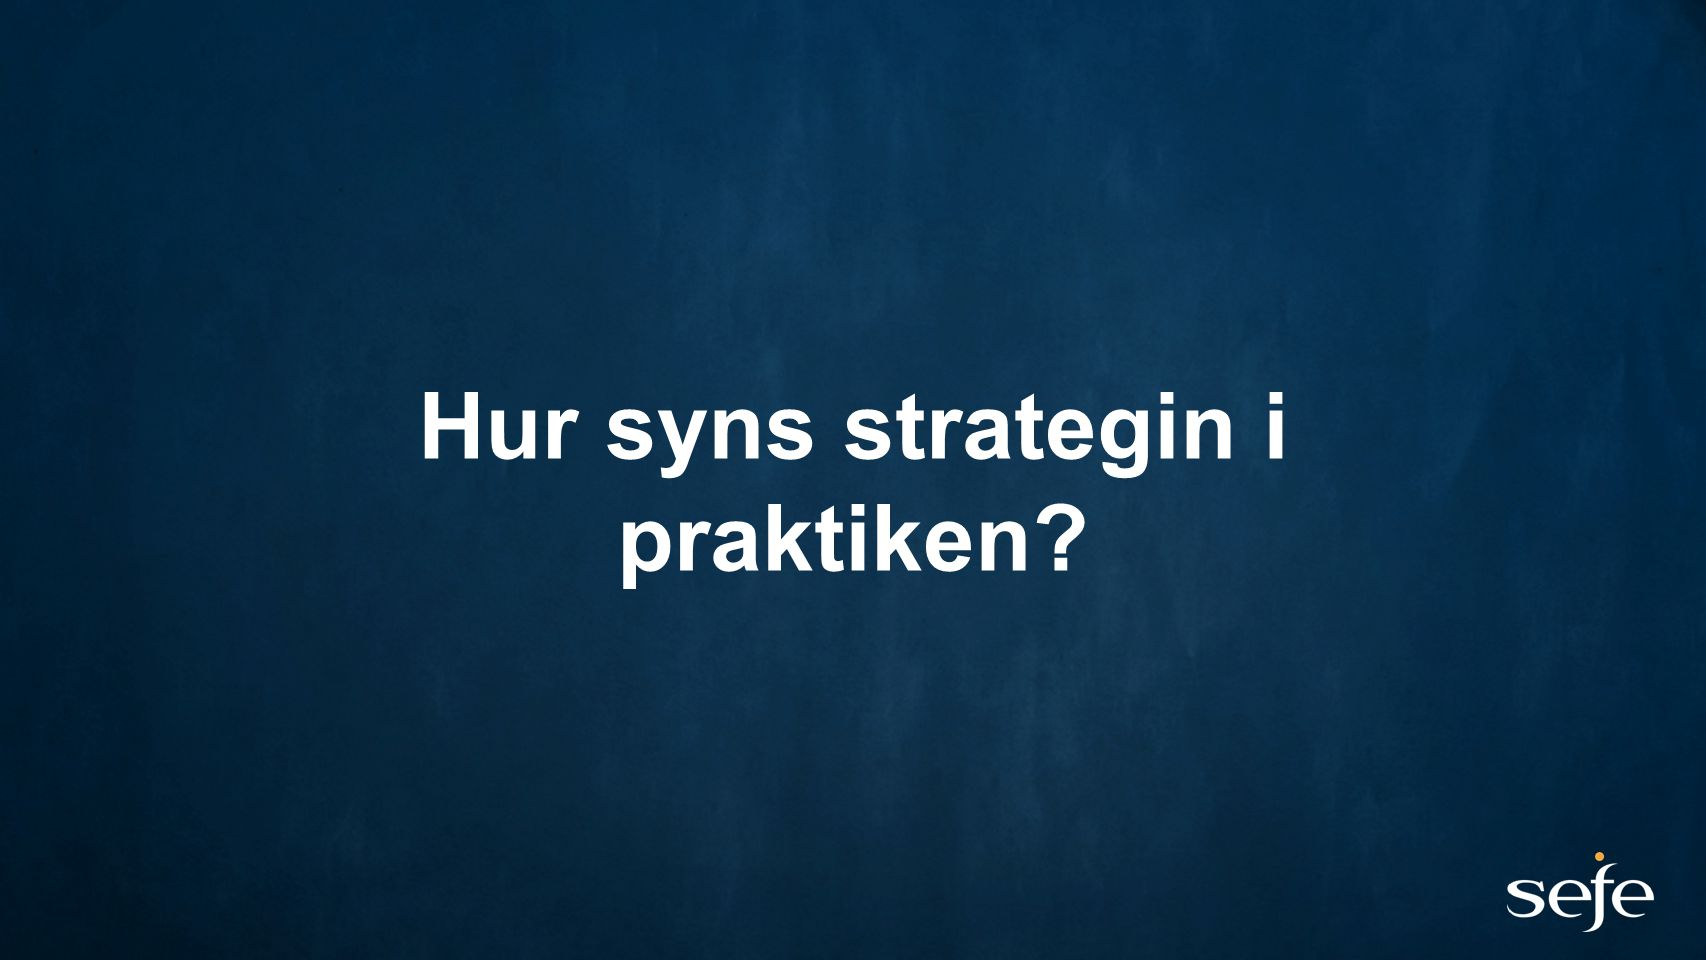 Hur syns strategin i praktiken